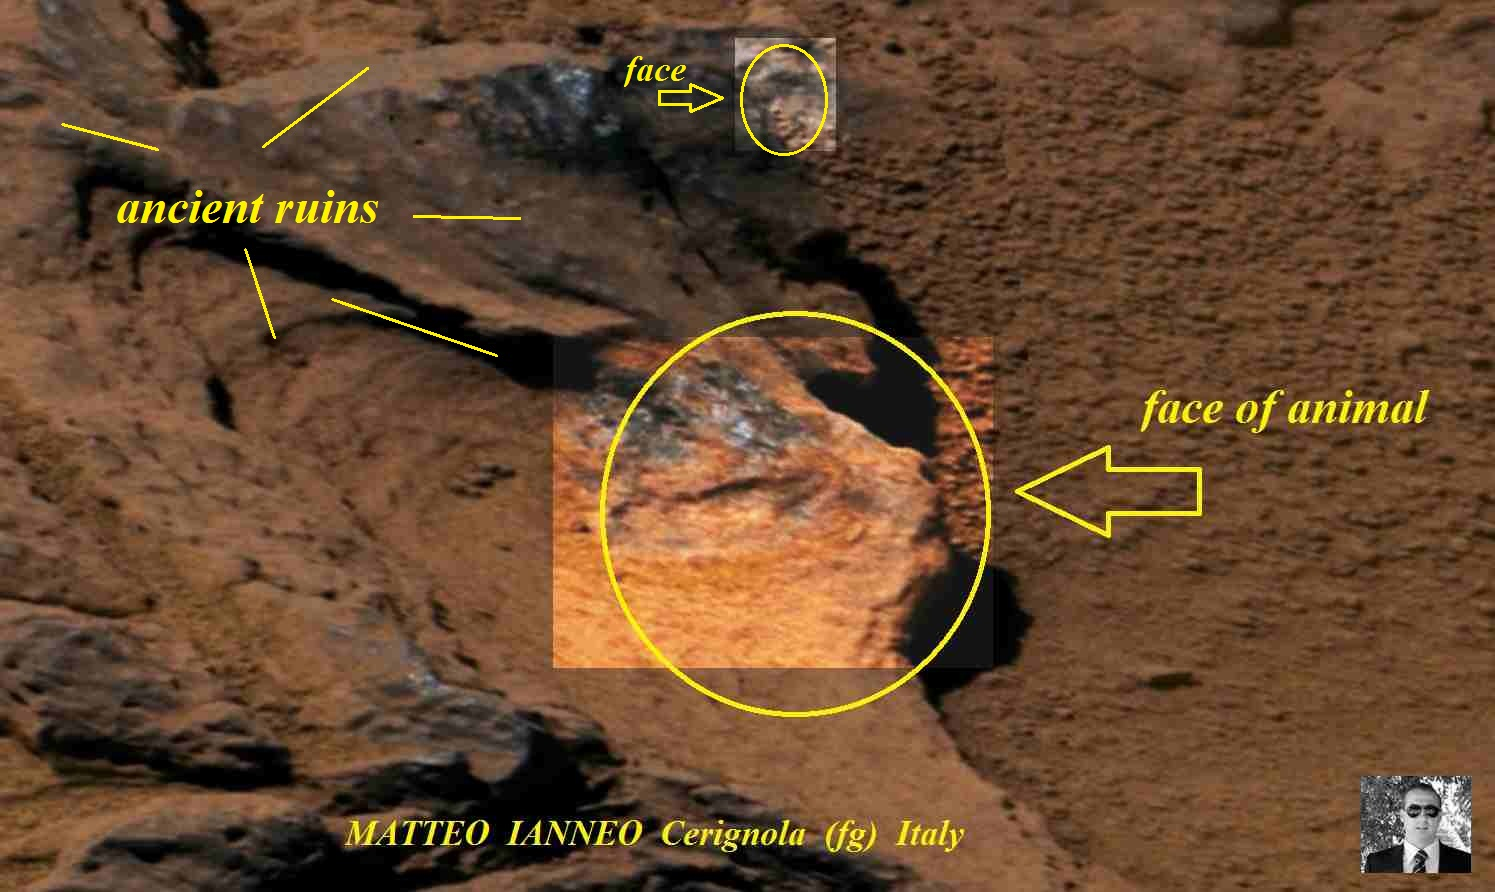 New Discoveries on Mars From My Friend Matteo Ianneo